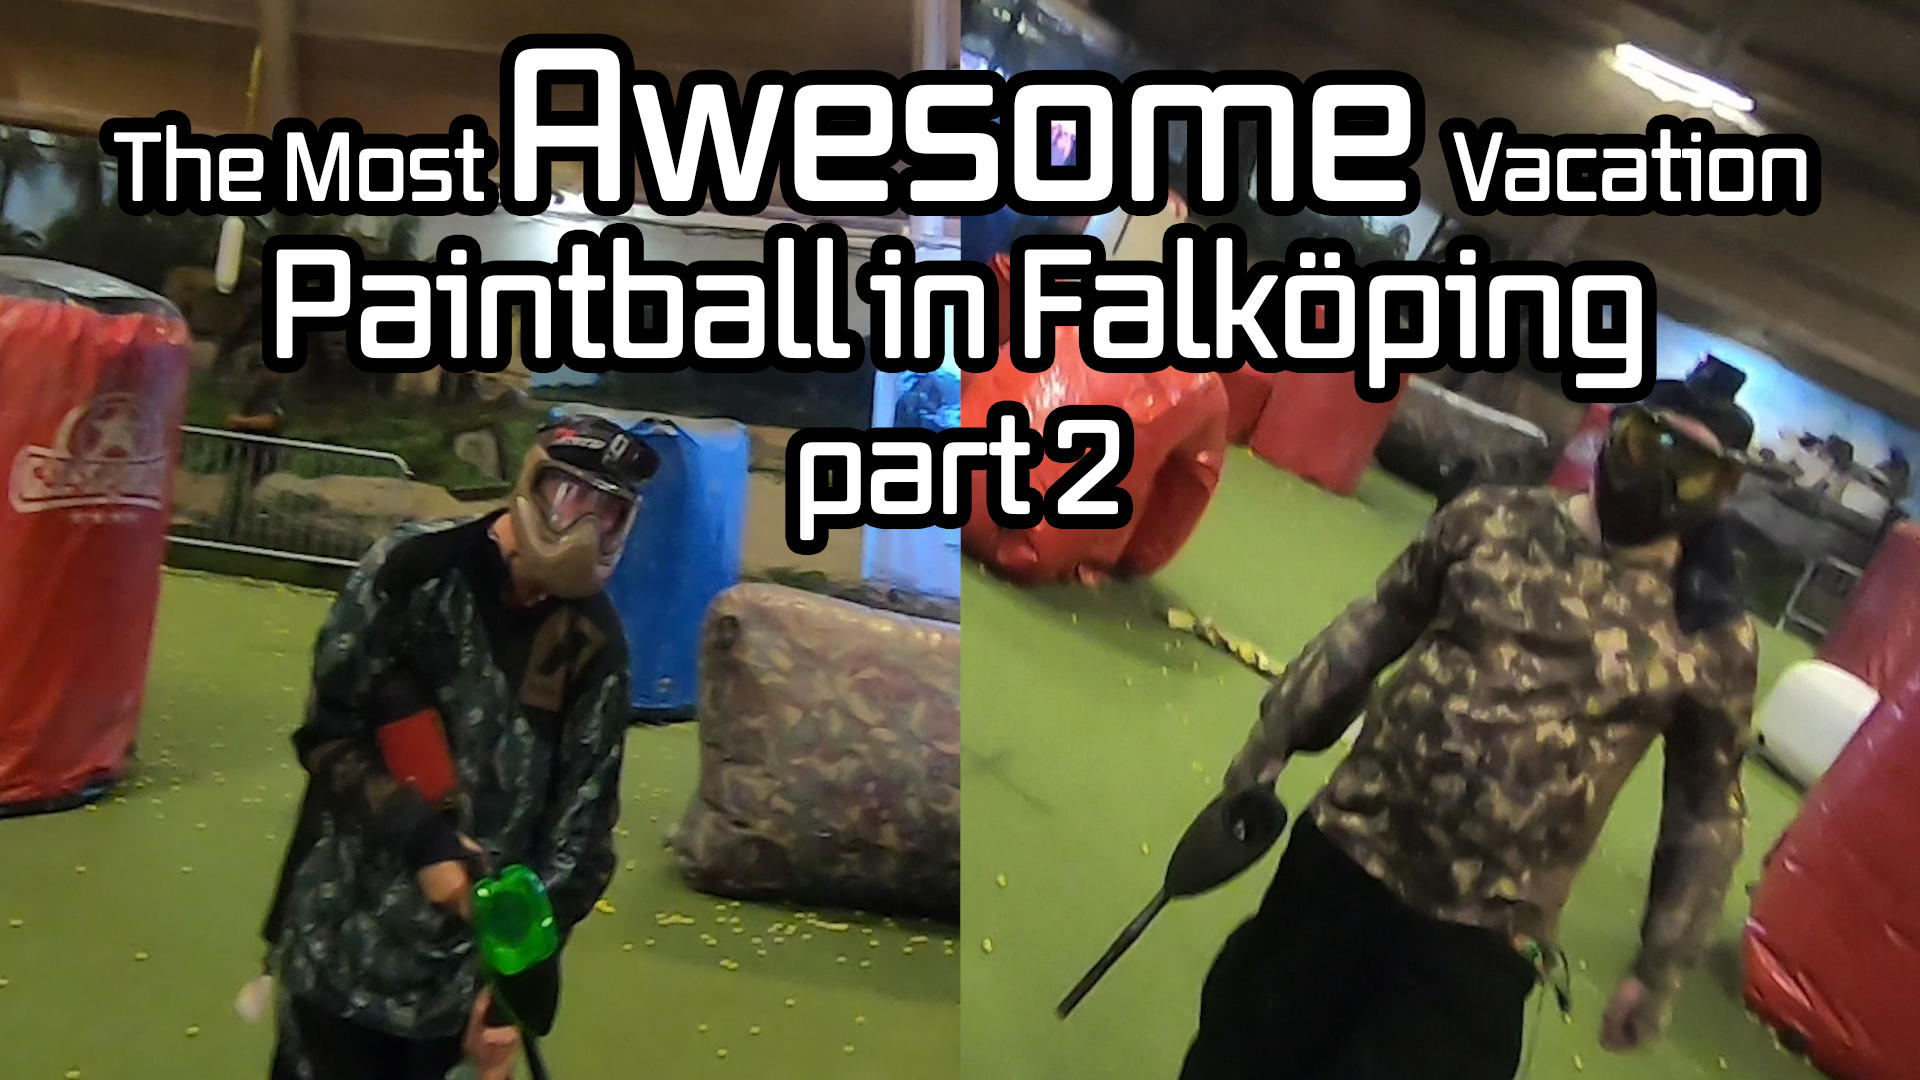 The Most Awesome Vacation: Paintball in Falköping - Part 2